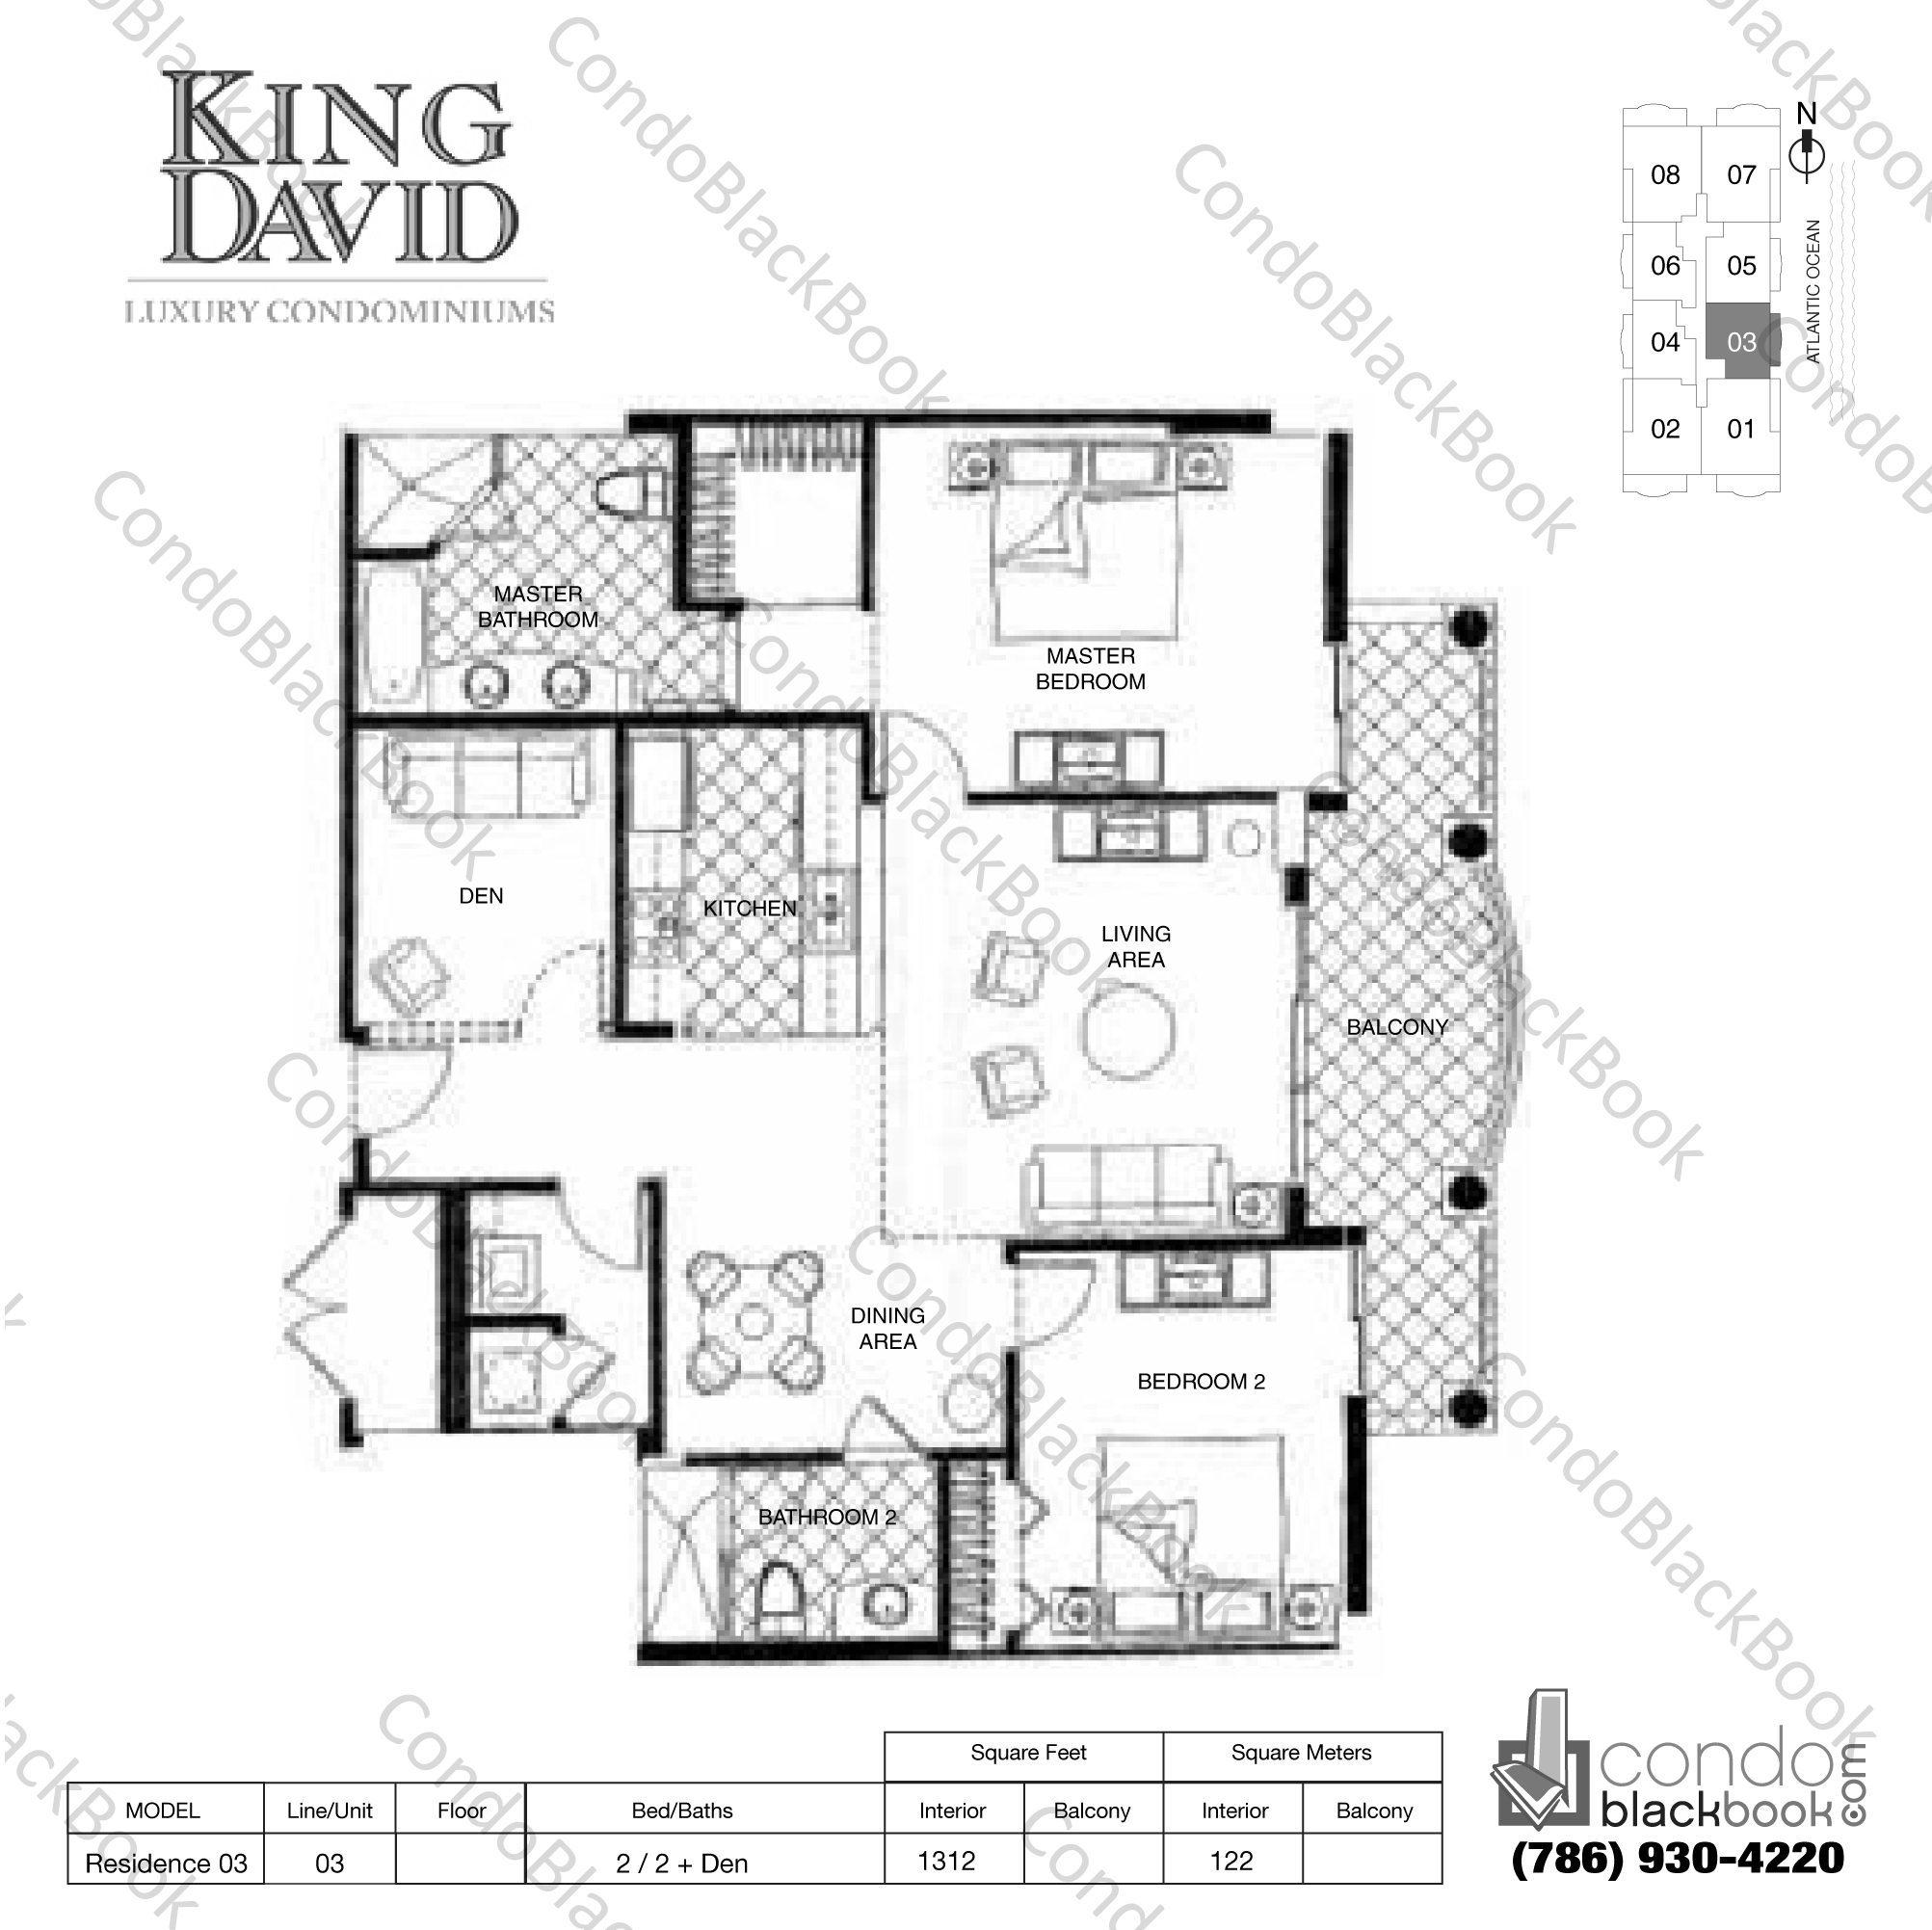 Floor plan for King David Sunny Isles Beach, model Residence 03, line 03, 2 / 2 + Den bedrooms, 1312 sq ft